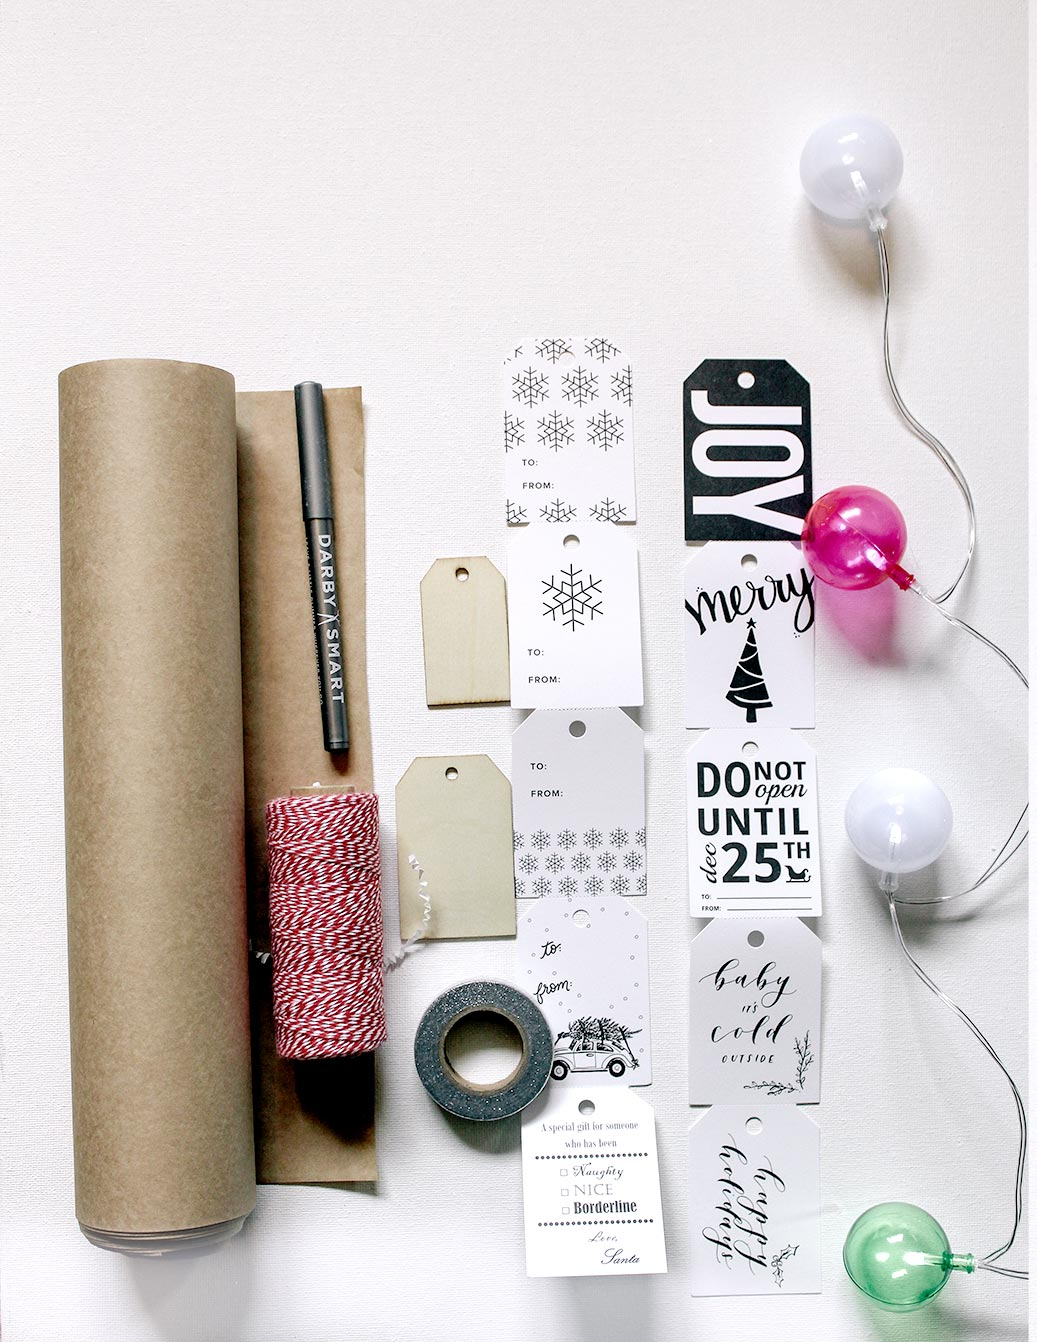 Darby Smart Gift Wrap Kit and Gap collaboration